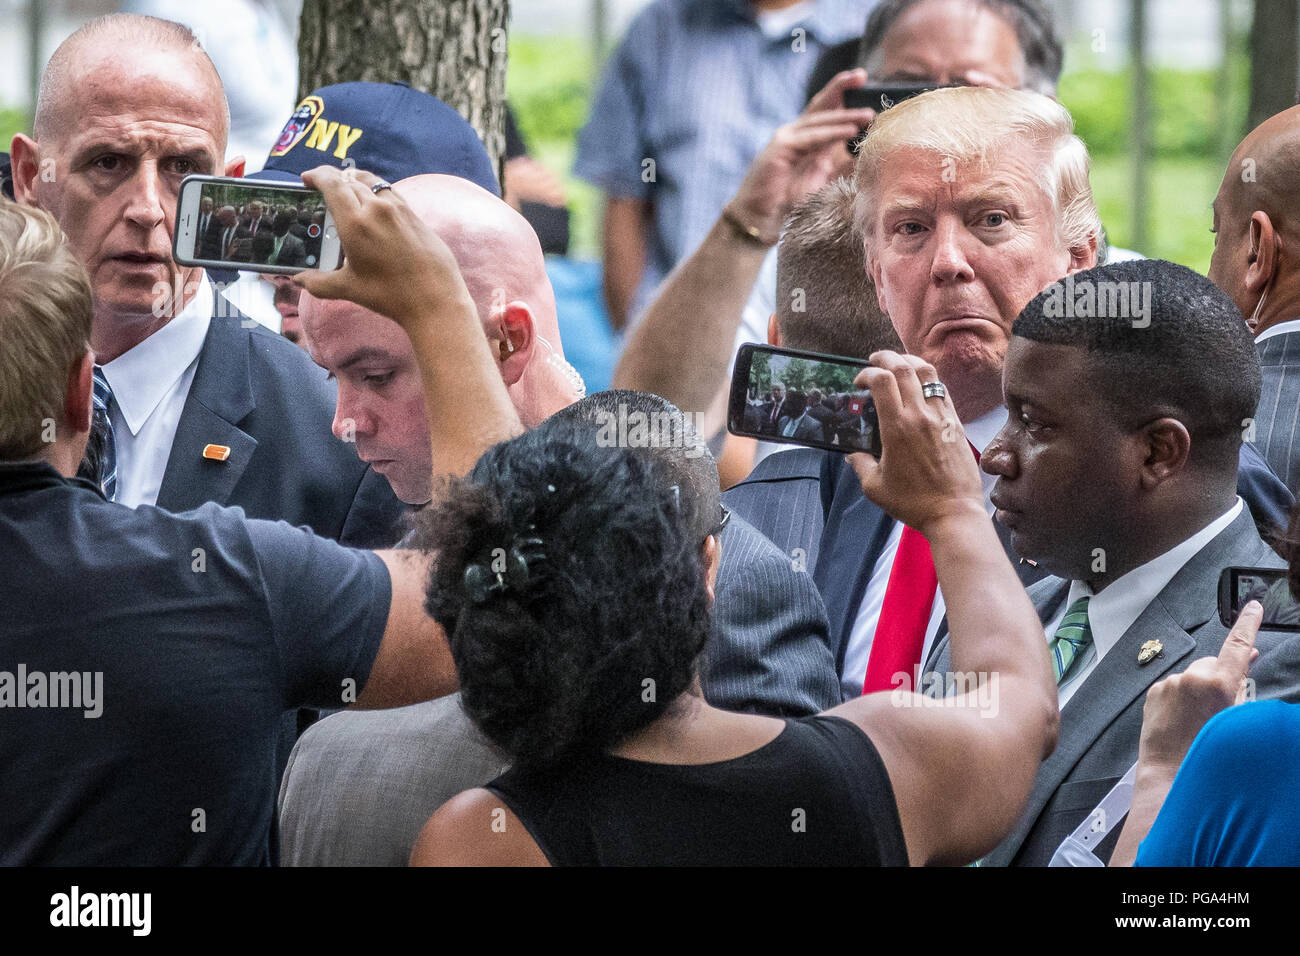 New York, USA, 11 September 2016. US President Donald Trump (candidate at the time) is surrounded by bodyguards as bystanders attempt to snap photos o Stock Photo